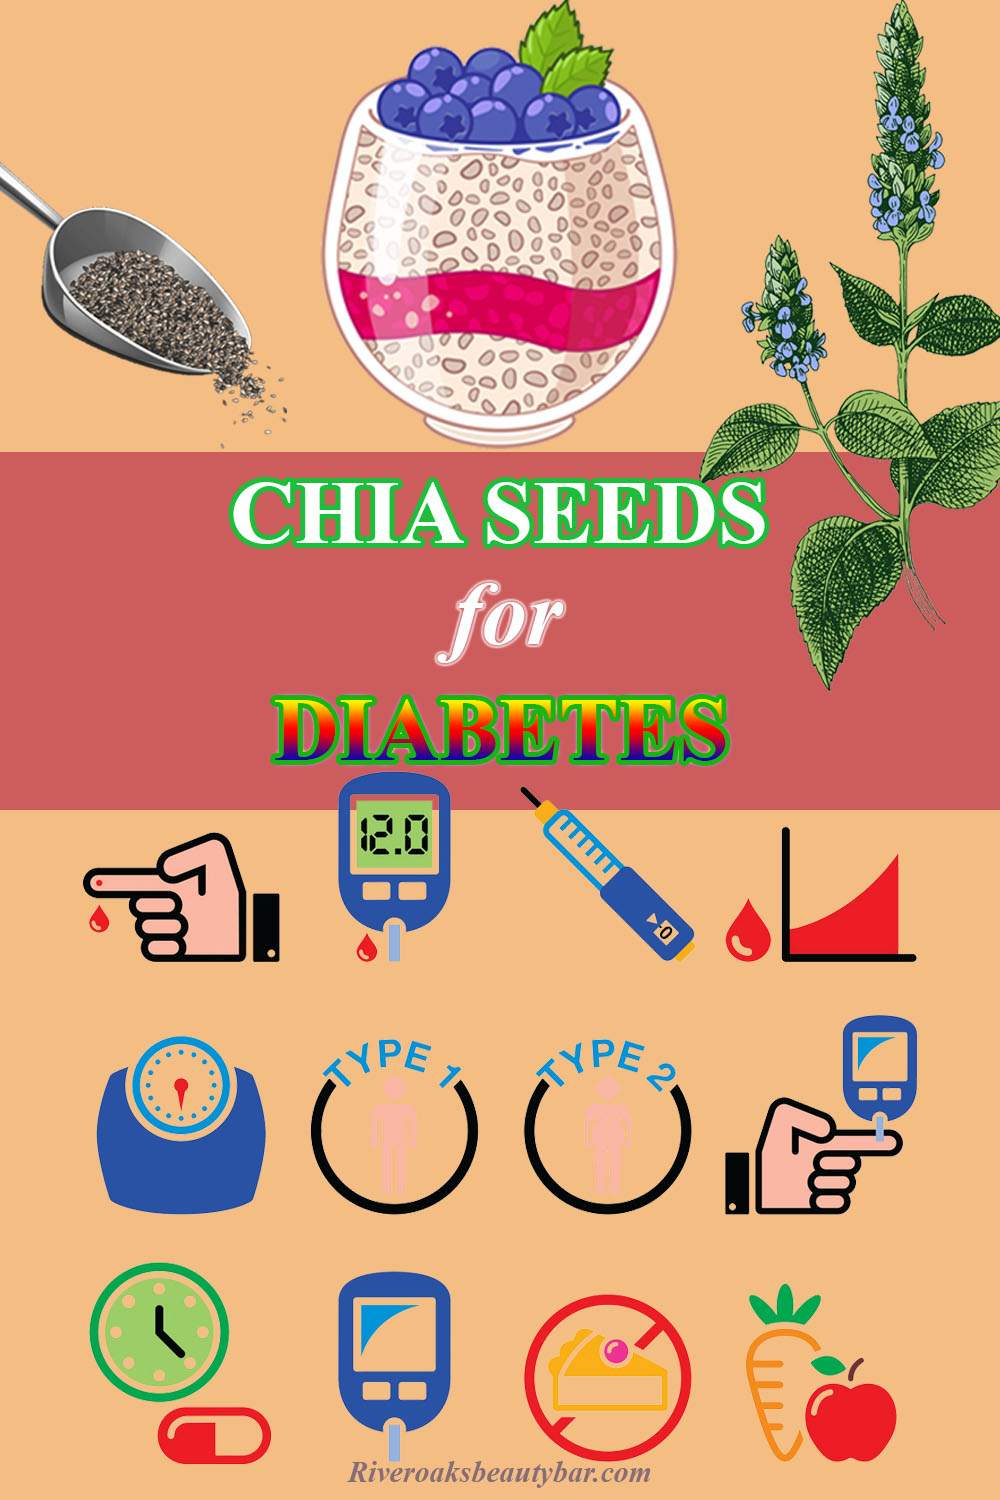 Chia Seeds for Diabetes